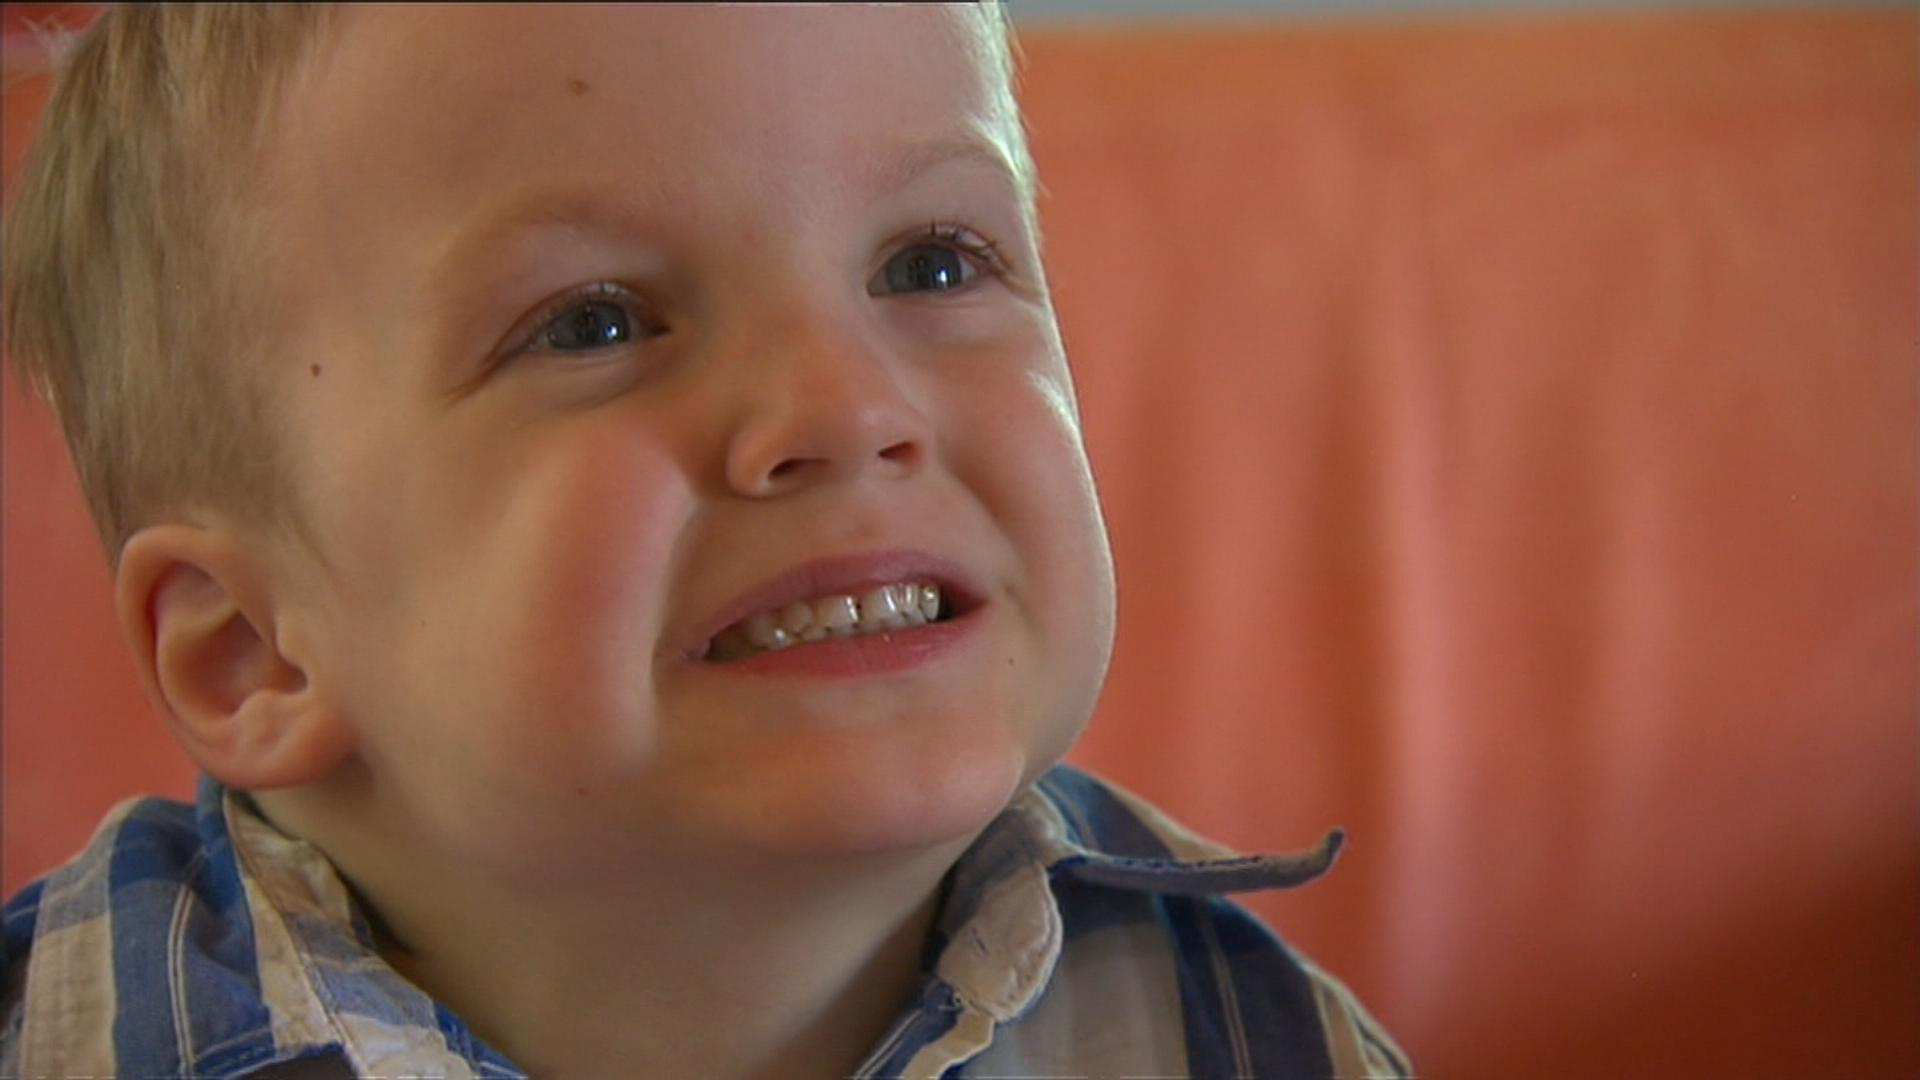 Kalten Nelson from Cooma was all smiles. (9NEWS)